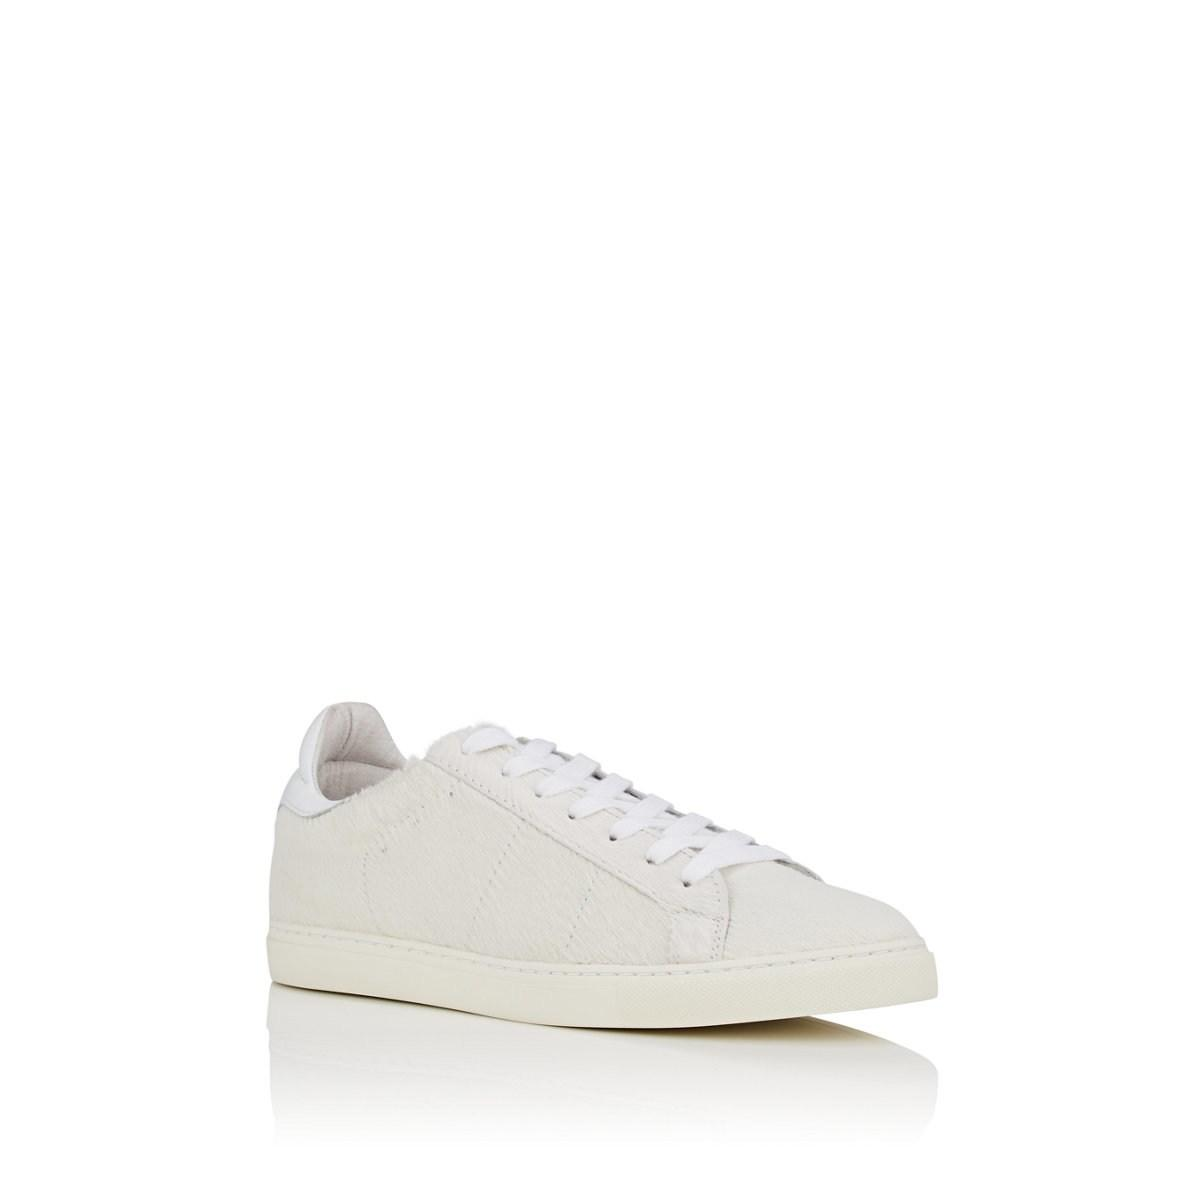 3afef813e7c767 Lyst - IRO Calf Hair   Leather Sneakers in White